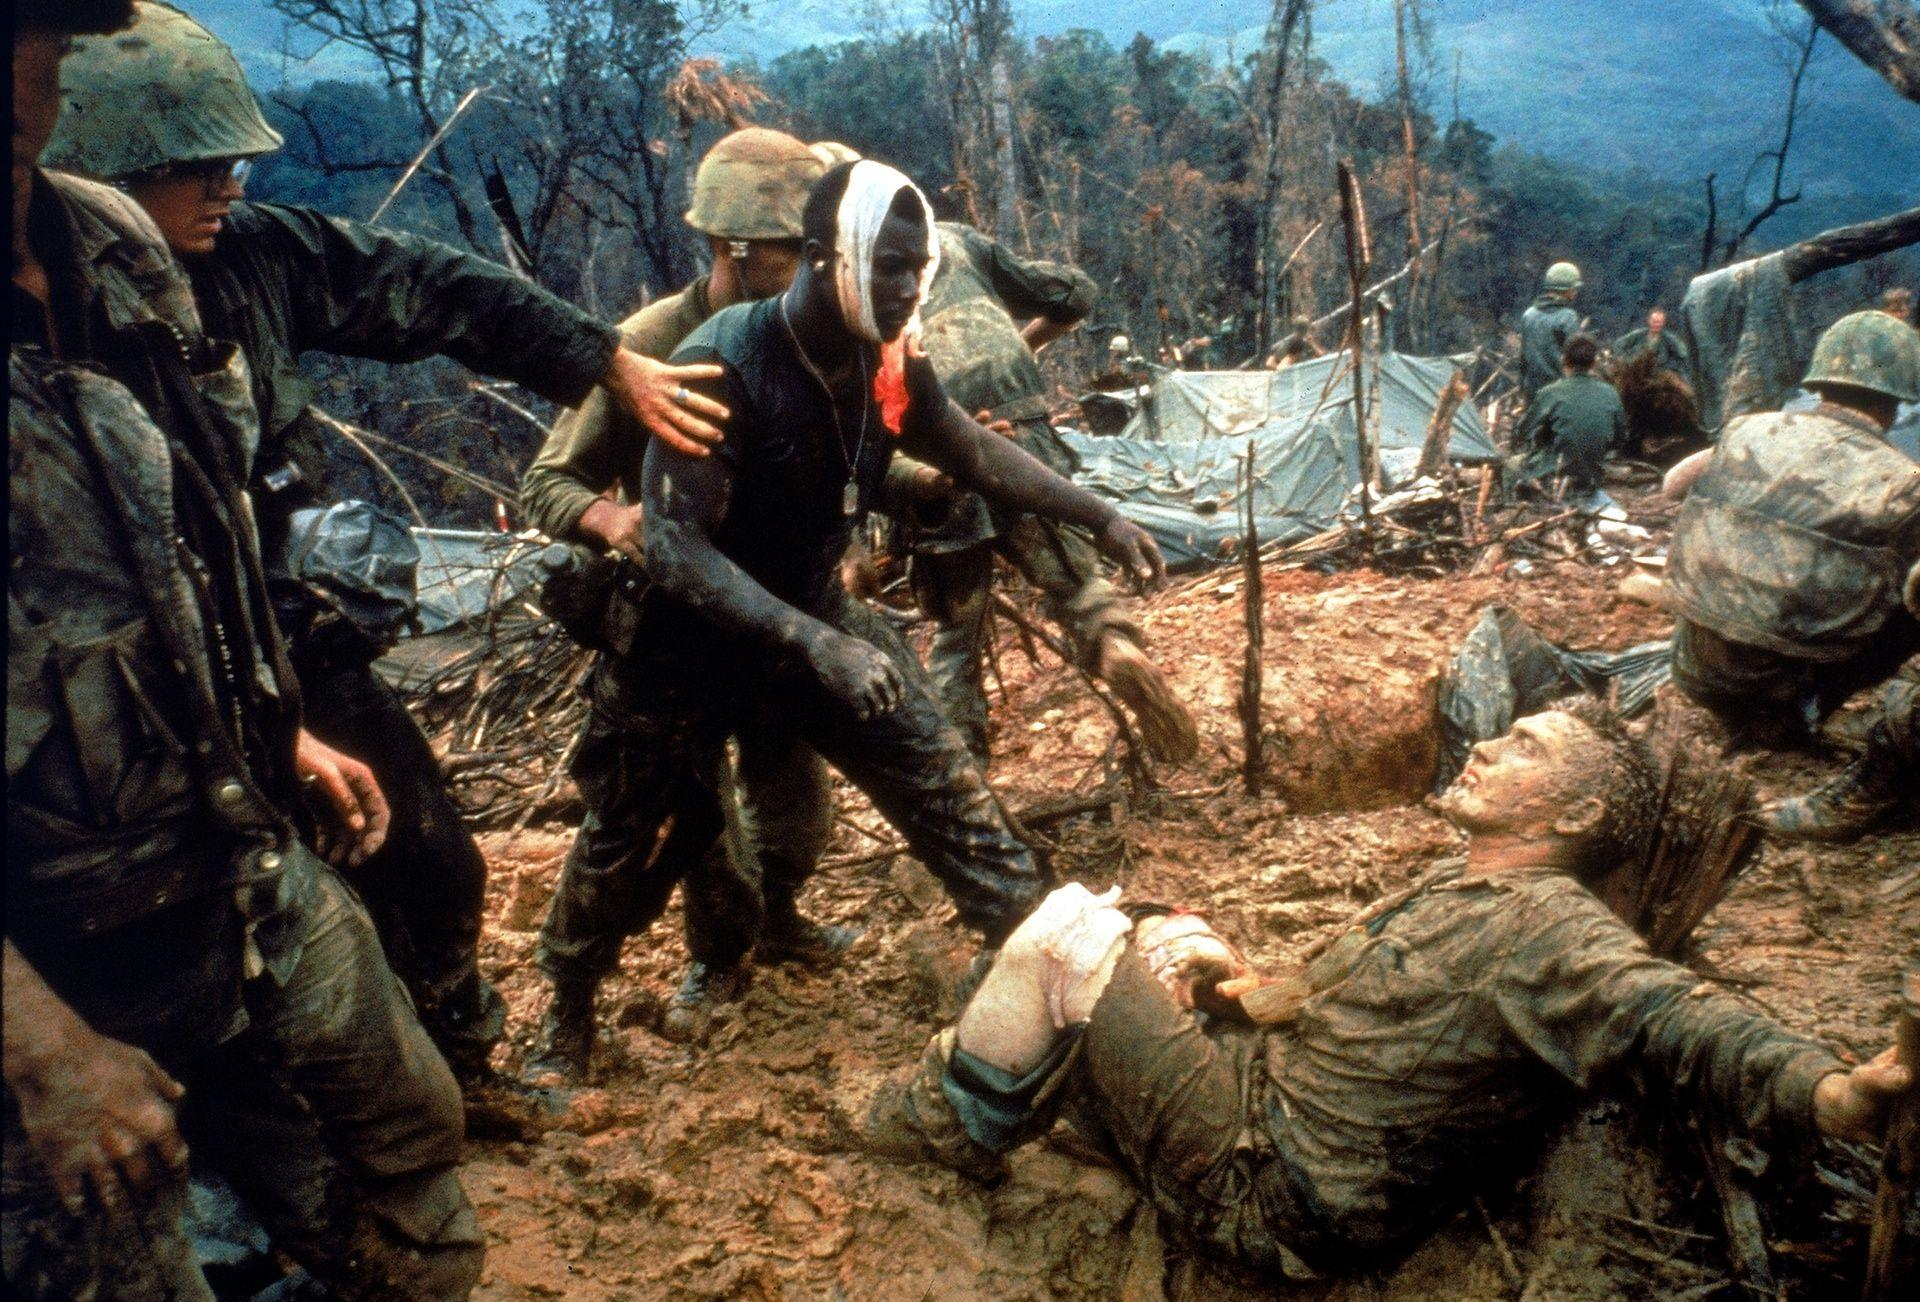 during the vietnam war era Photographs from vietnam in 1963, when america was escalating its involvement in a conflict that would, in time, come to define an era.